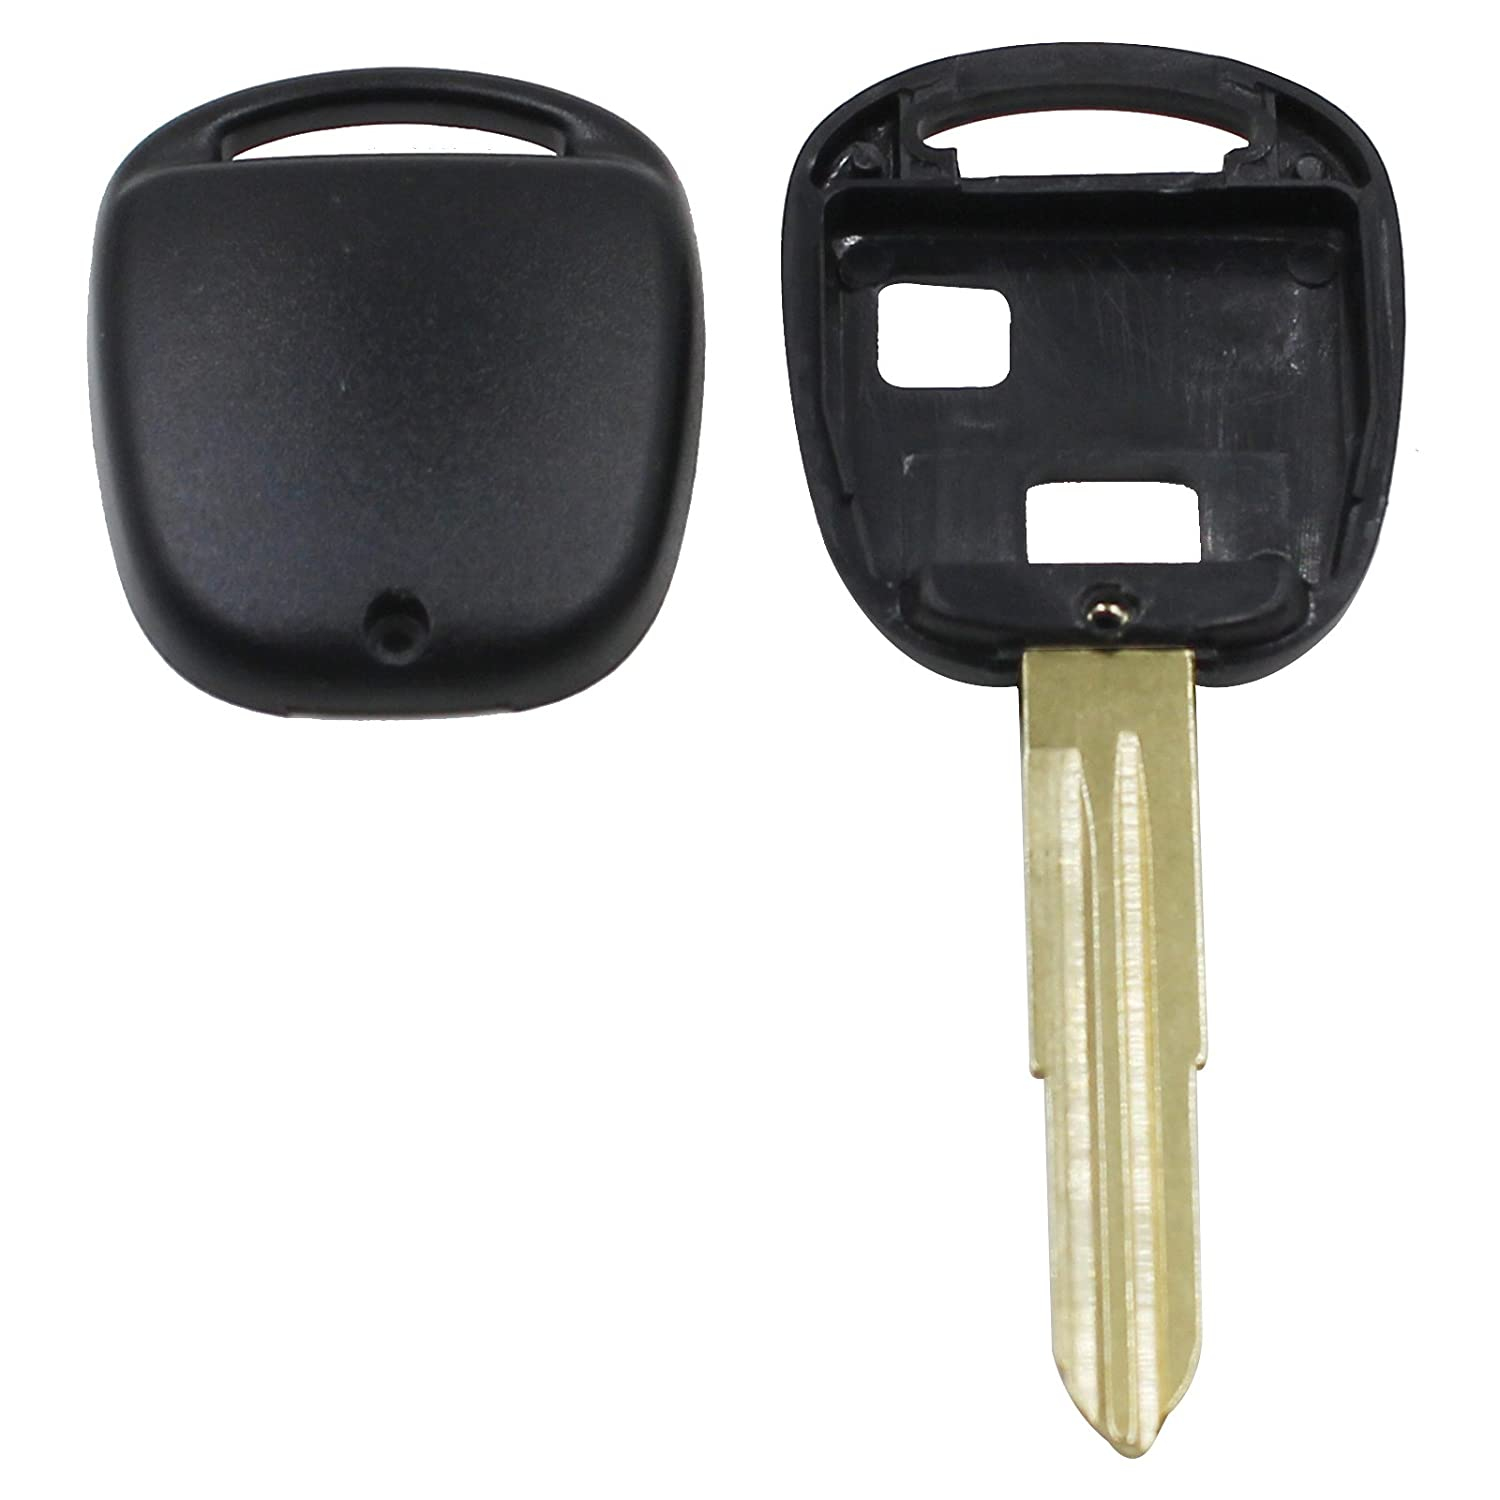 Heart Horse 2 Button Replacement Remote Key Shell Fob Compatible with Toyota Yaris Avalon Camry RAV4